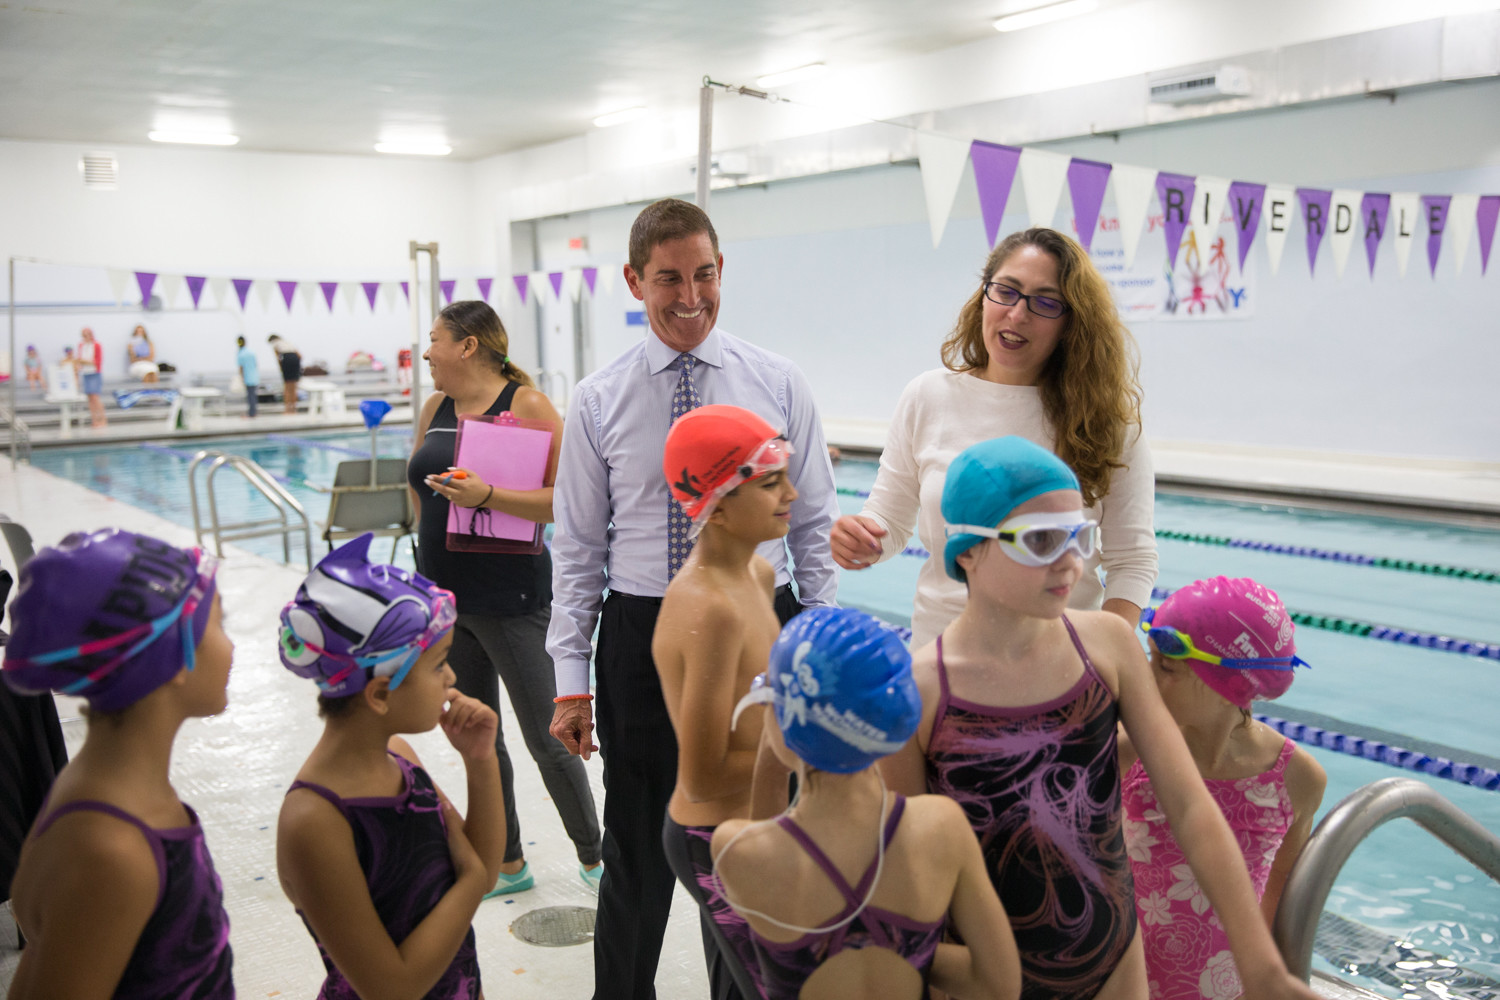 Sen. Jeffrey Klein meets with participants of The Riverdale Y's swim team to announce the allocation of $115,000 to help renovate its pool.